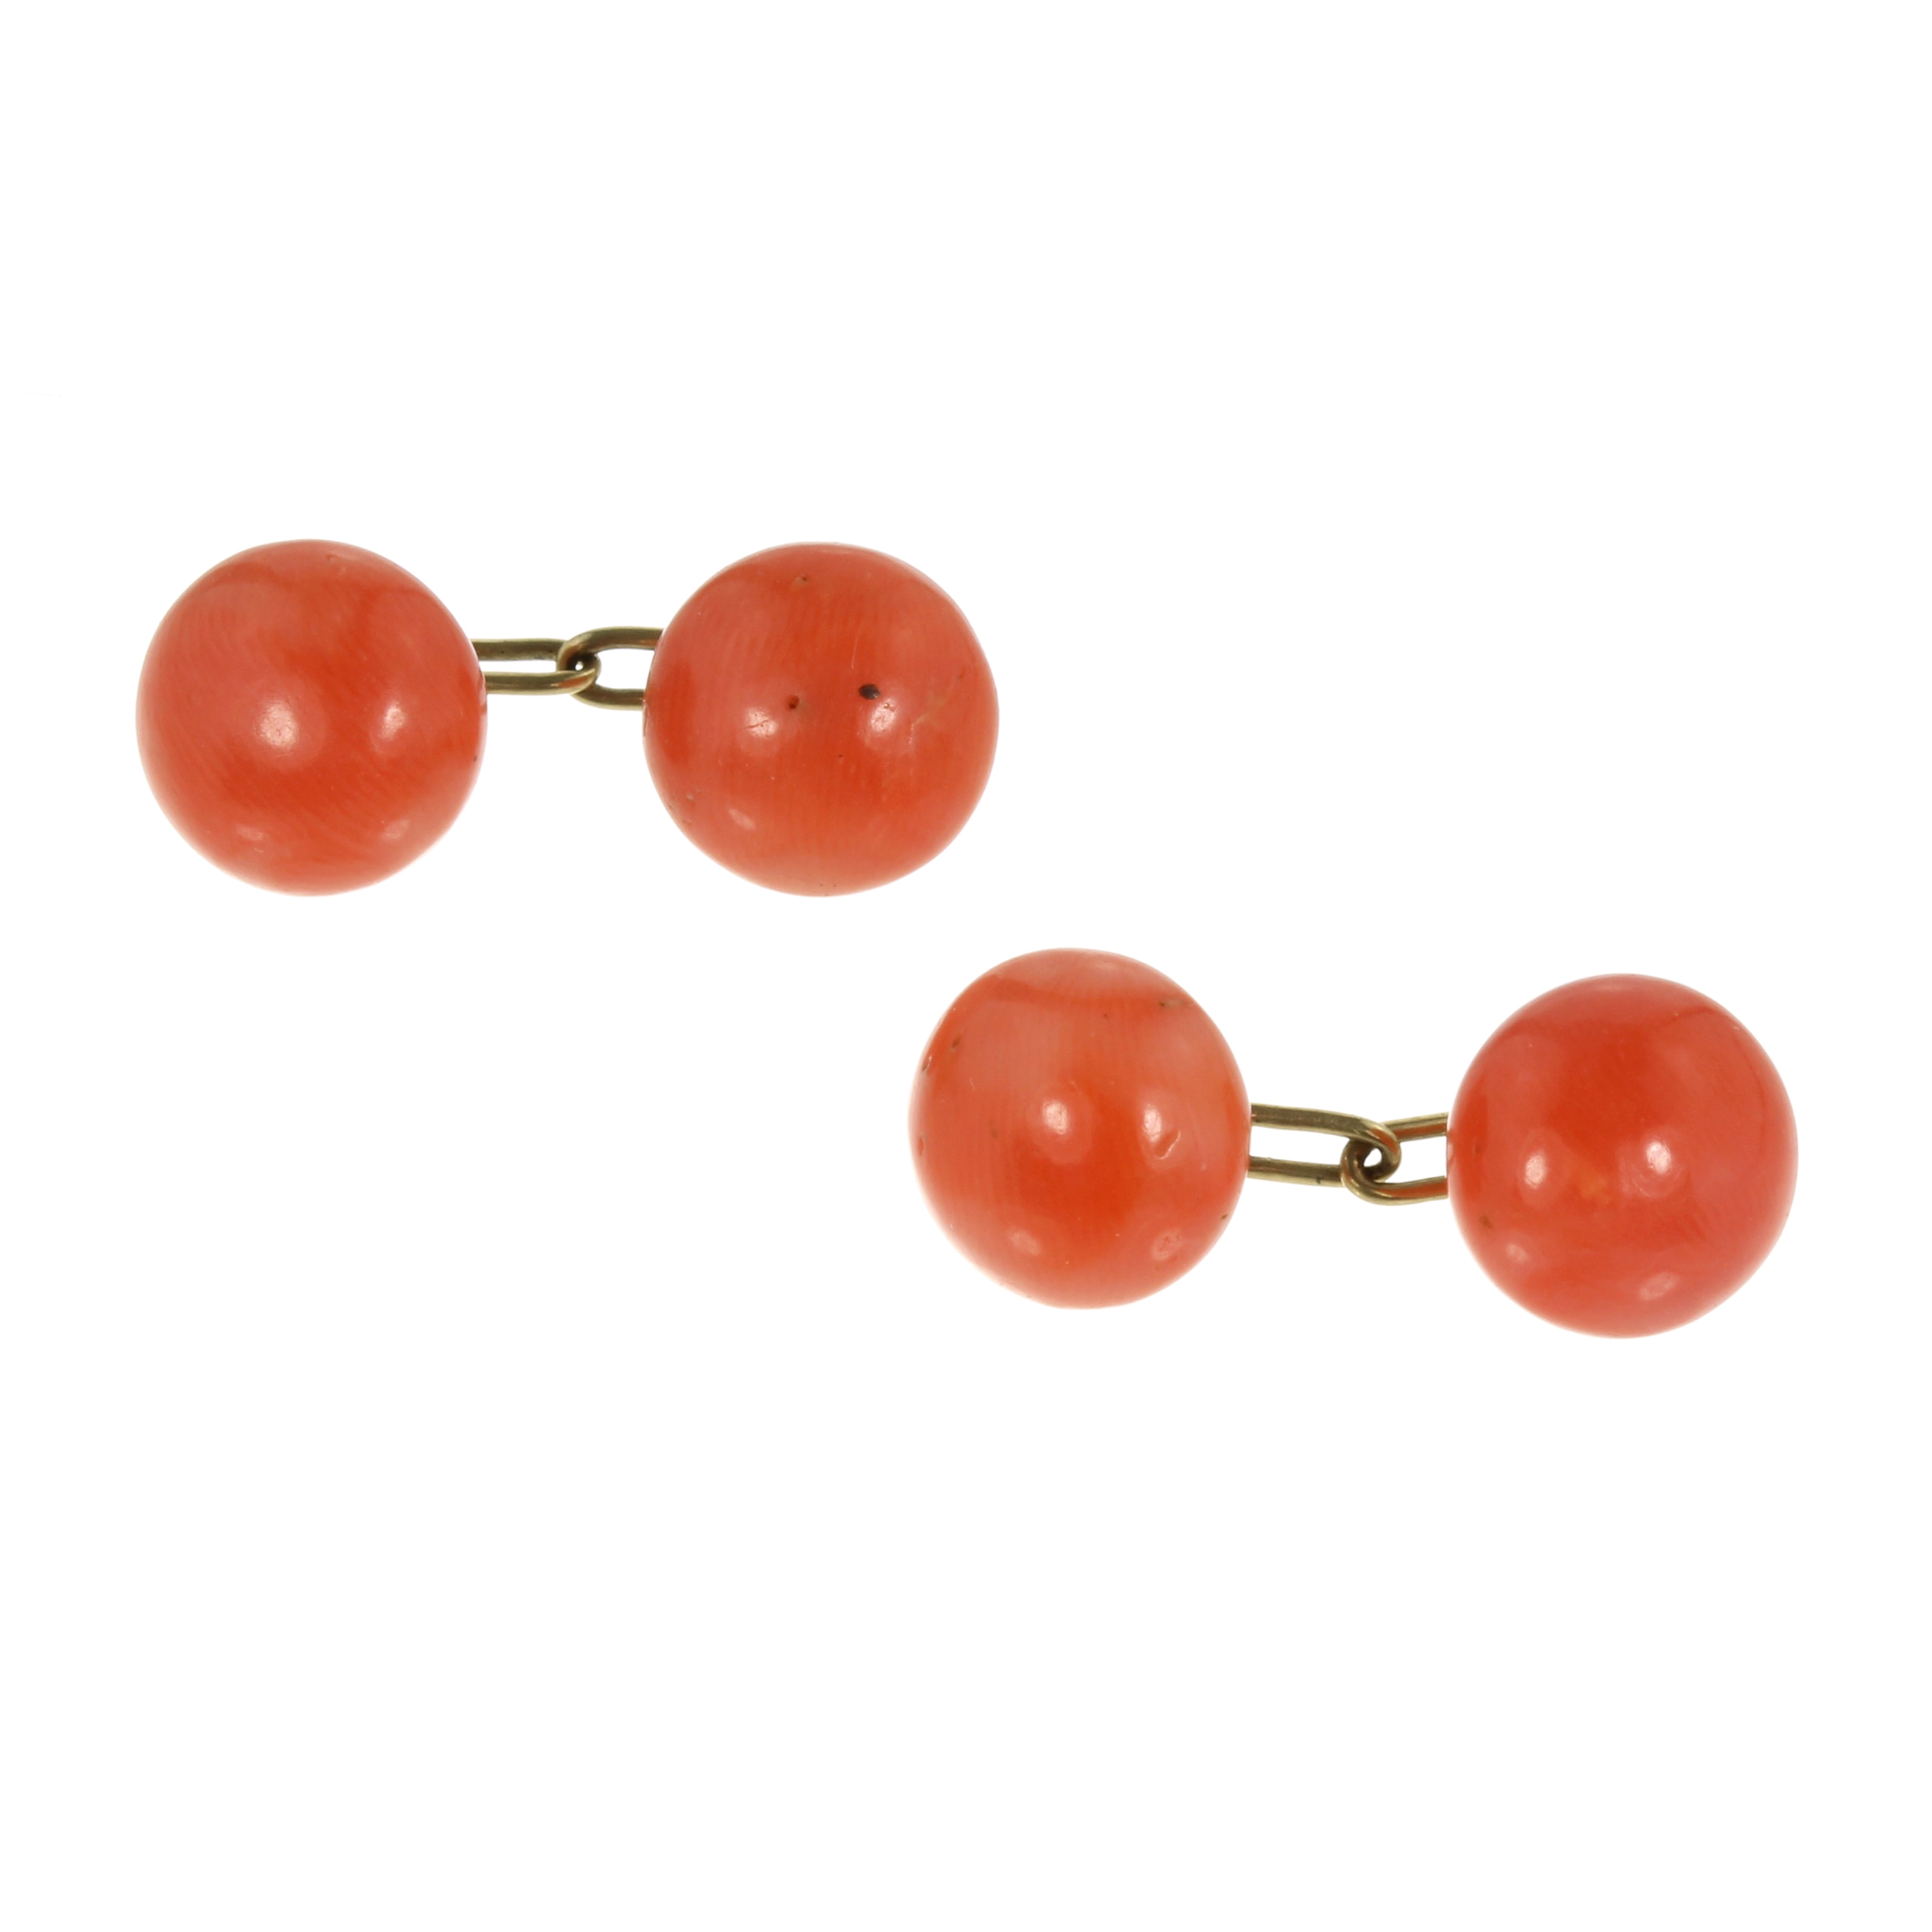 Los 11 - A PAIR OF ANTIQUE CORAL BEAD CUFFLINKS each comprising two polished coral beads of 10-11mm in